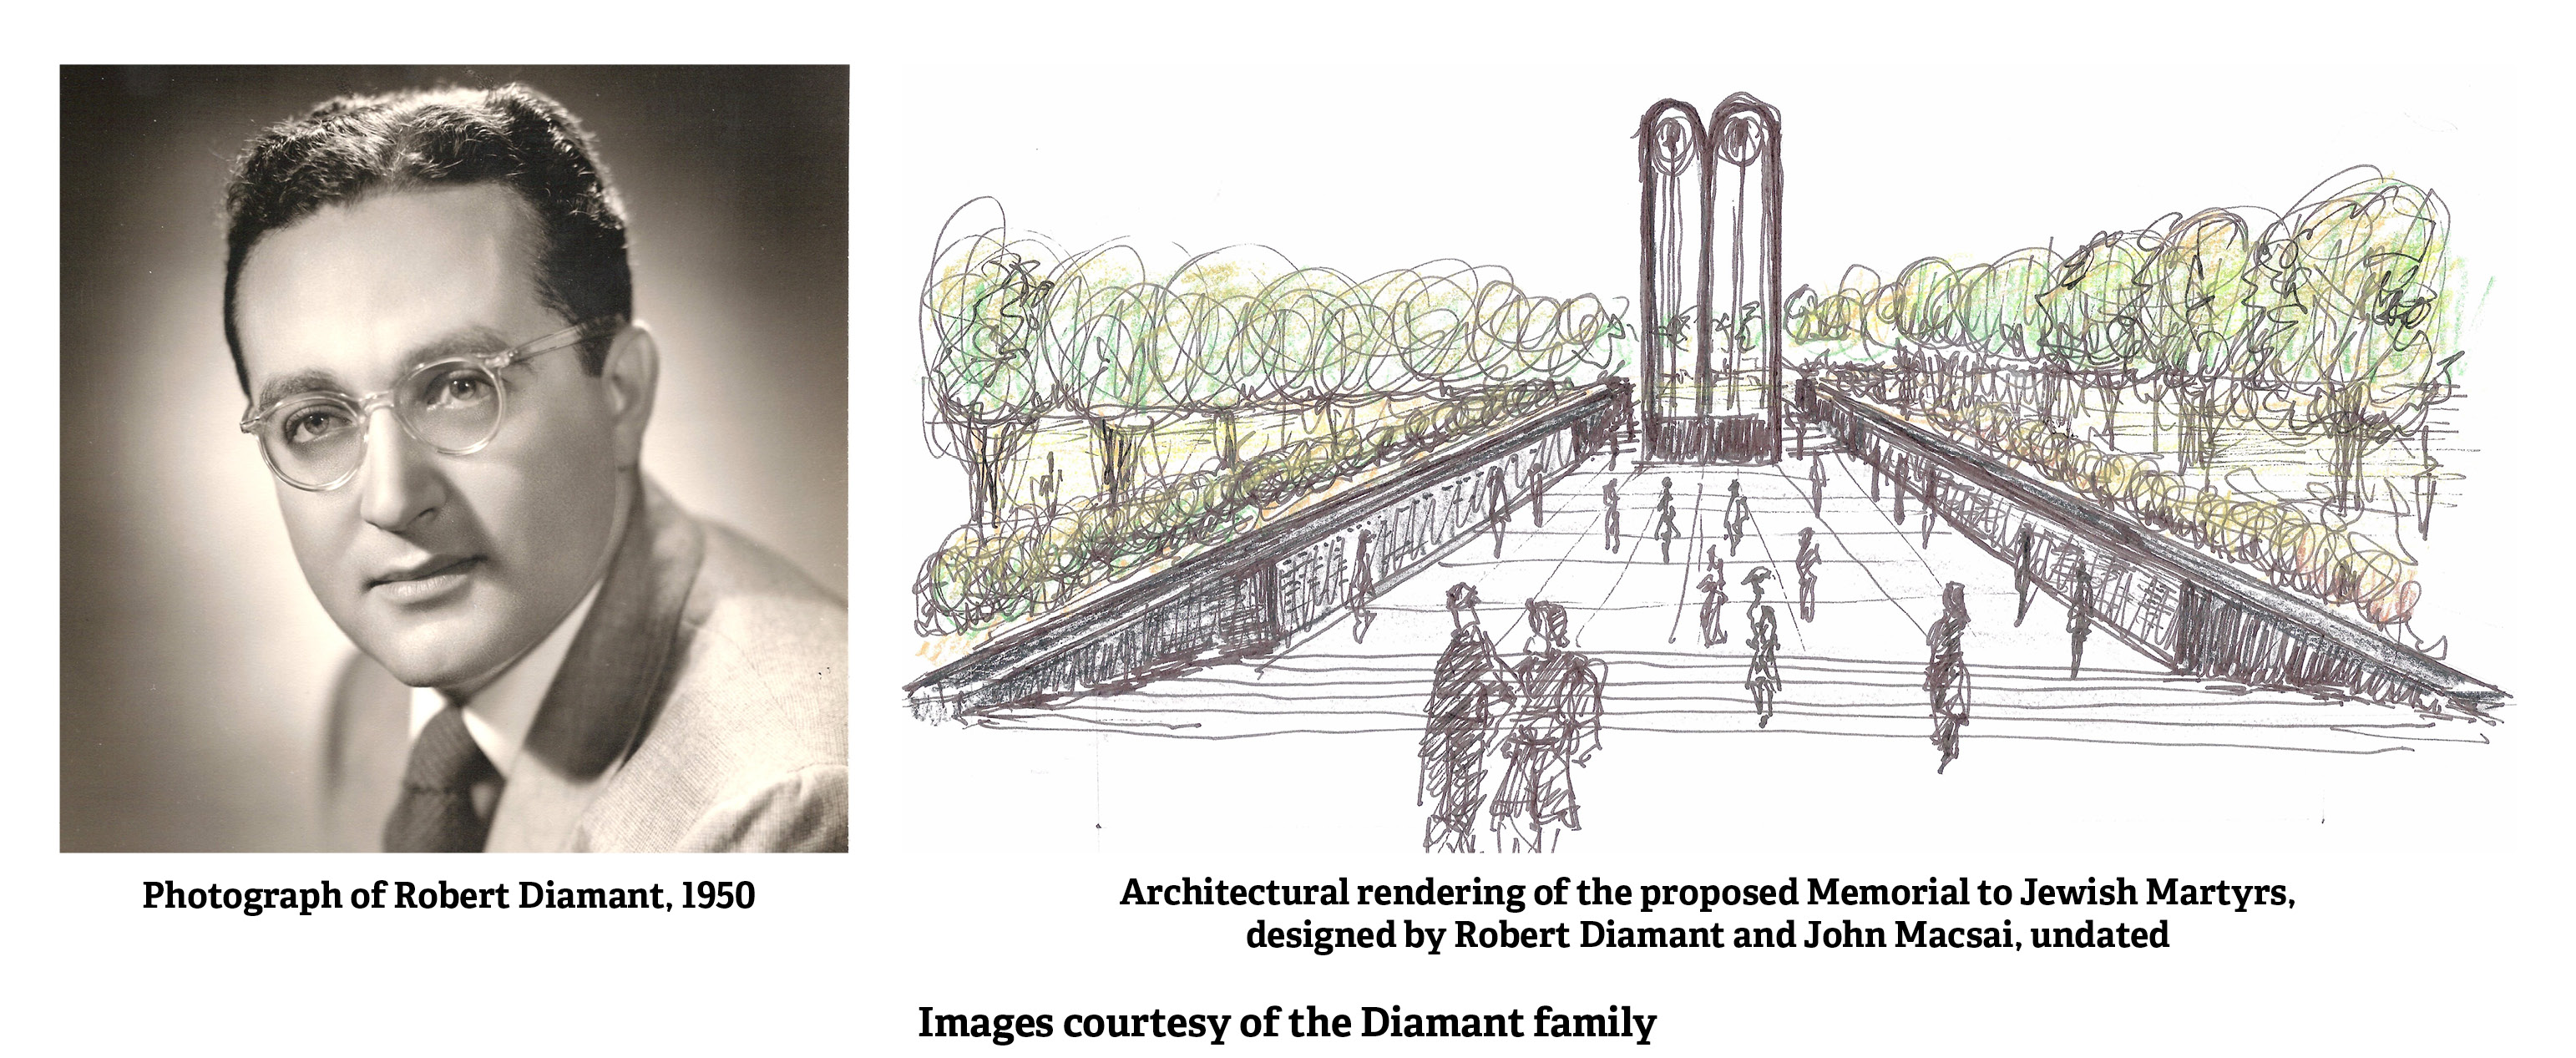 Photograph of Robert Diamant, 1950 and Architectural rendering of the proposed Memorial to Jewish Martyrs, designed by Robert Diamant and John Macsai, undated